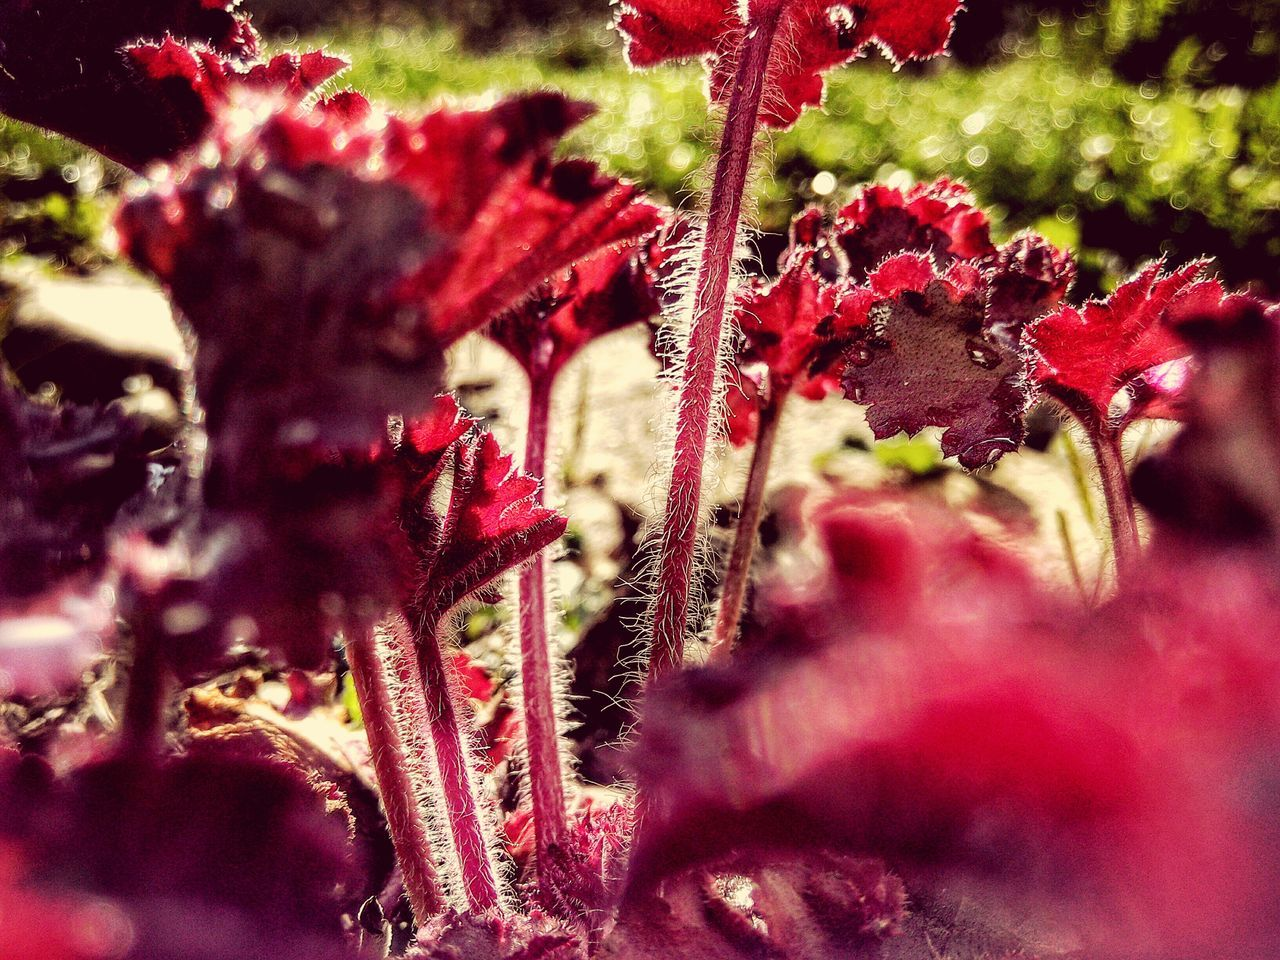 Perennial Leaves Growing Macro Red Leaves Spring Springtime Dew Drops Dew Bokeh Garden Garden Photography Morning Sun Heurecha Hairy Leaves Showcase April